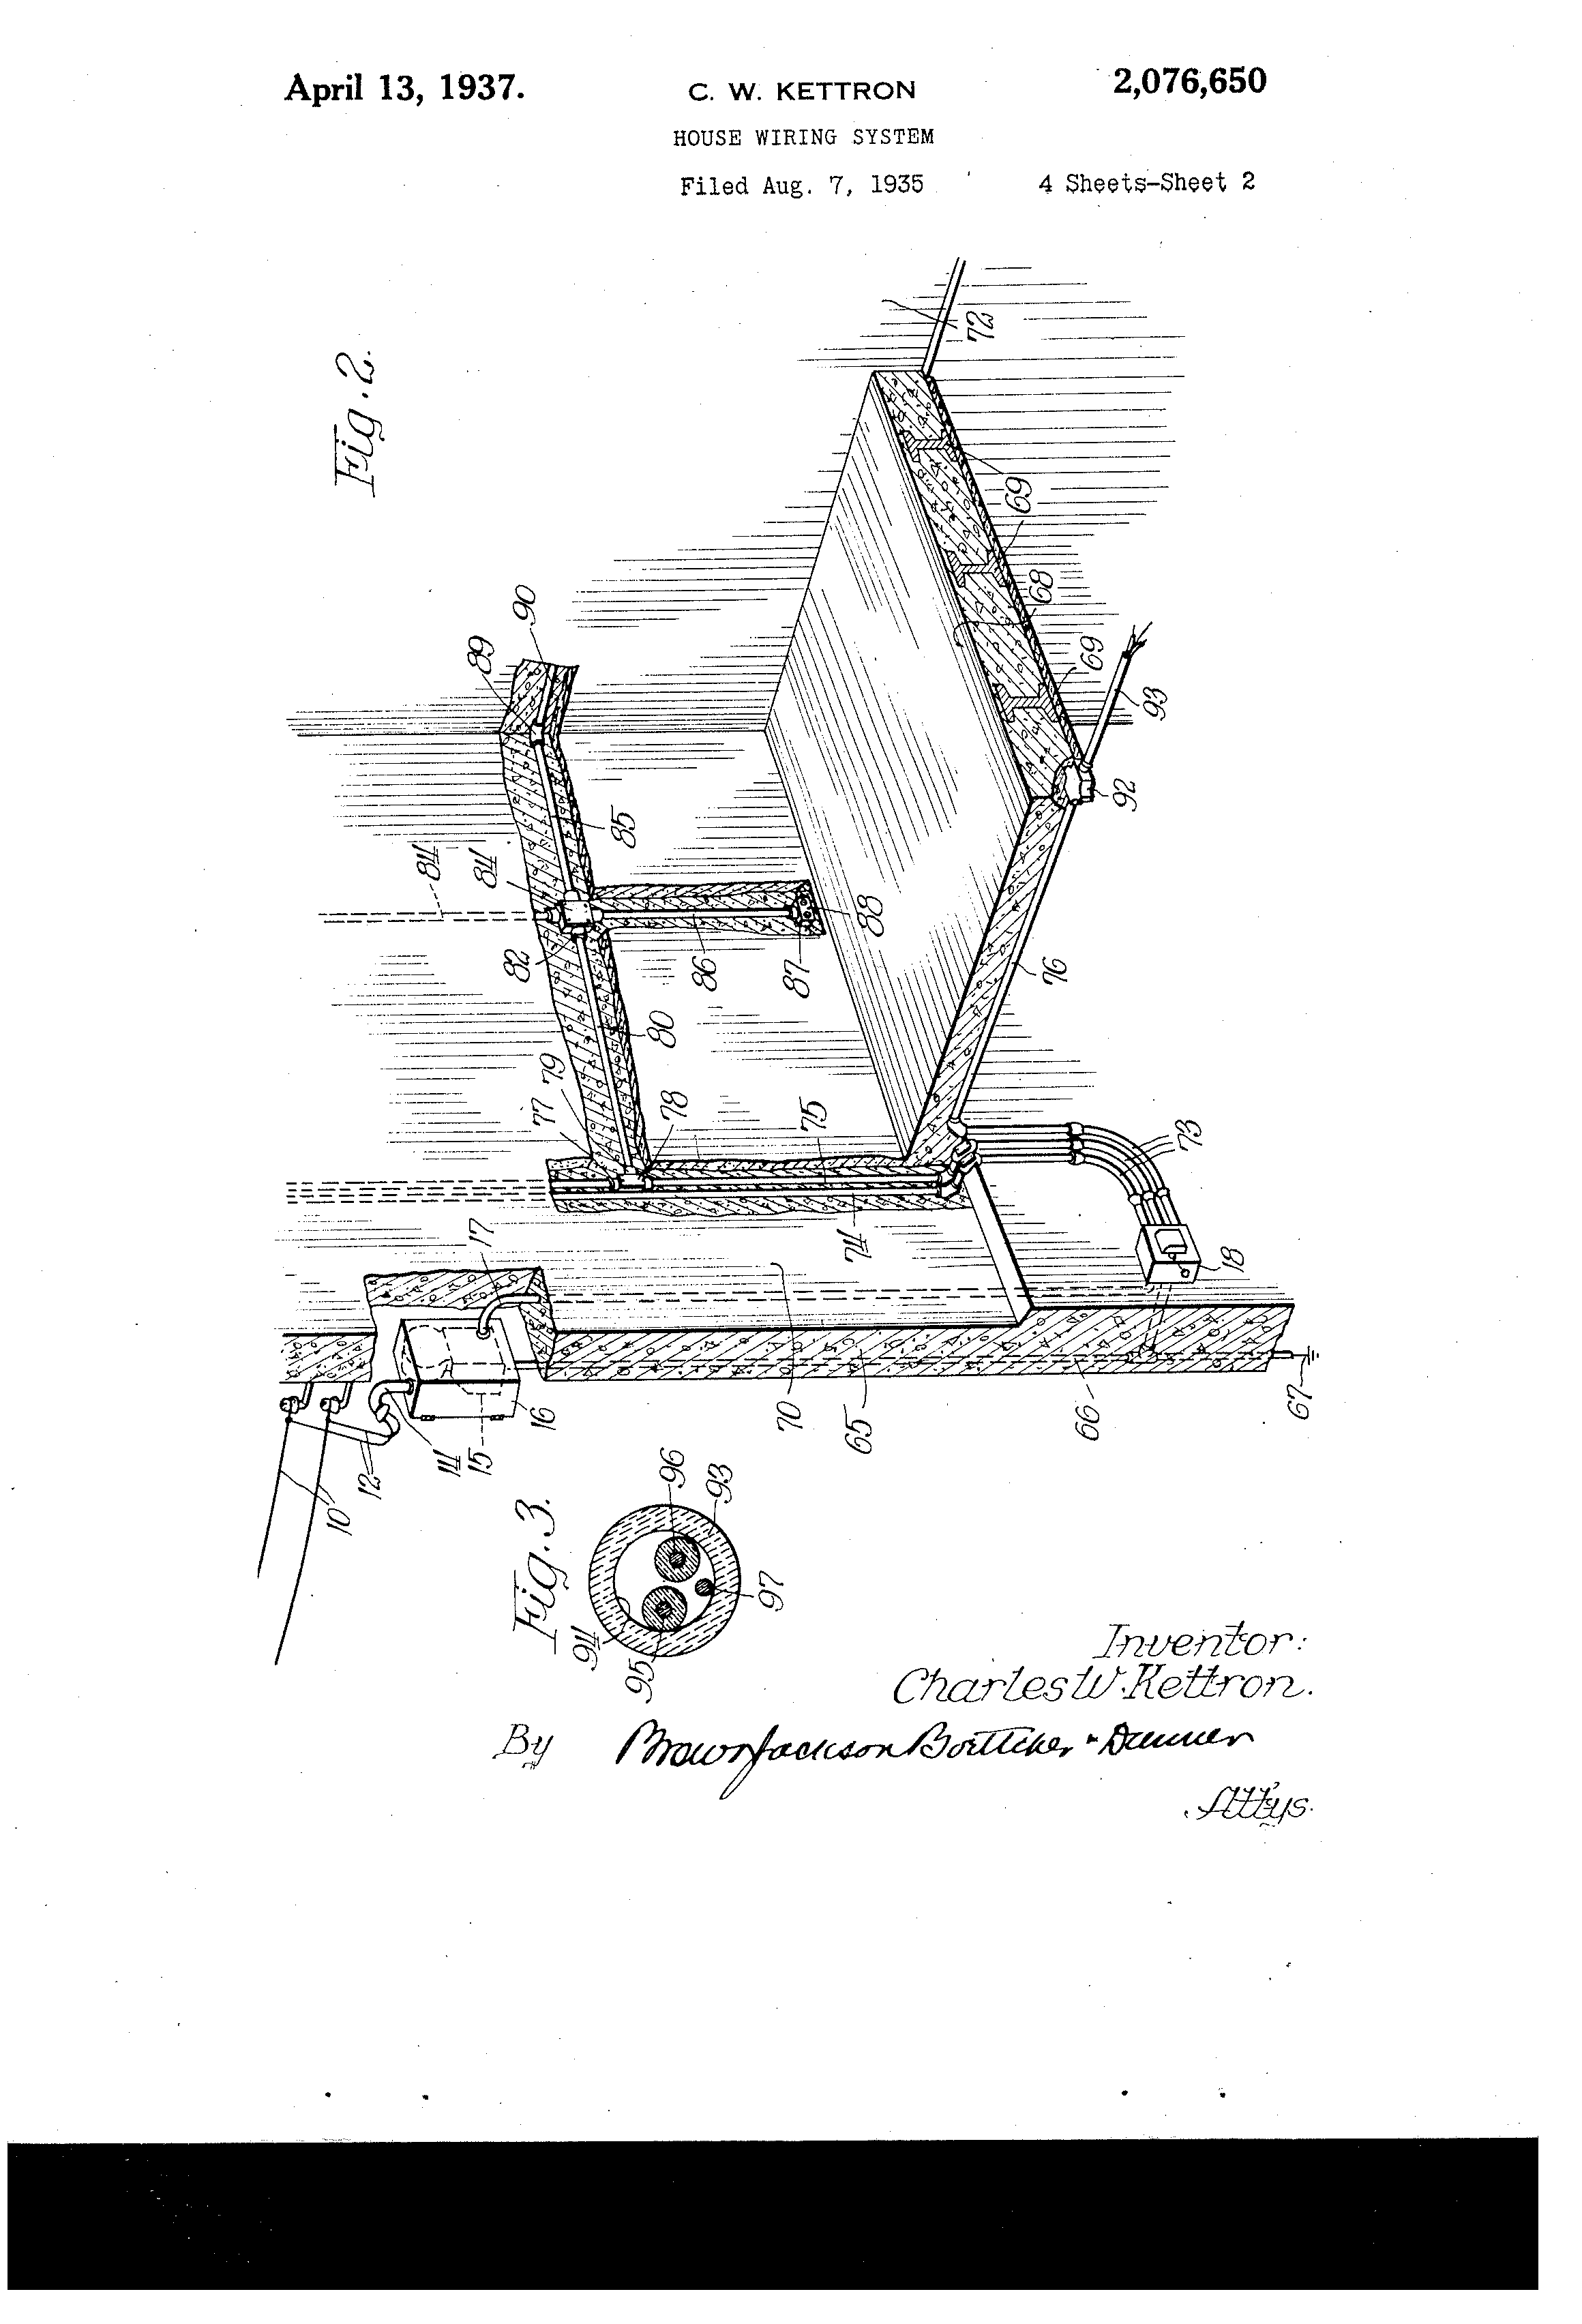 Patent Us2076650 - House Wiring System